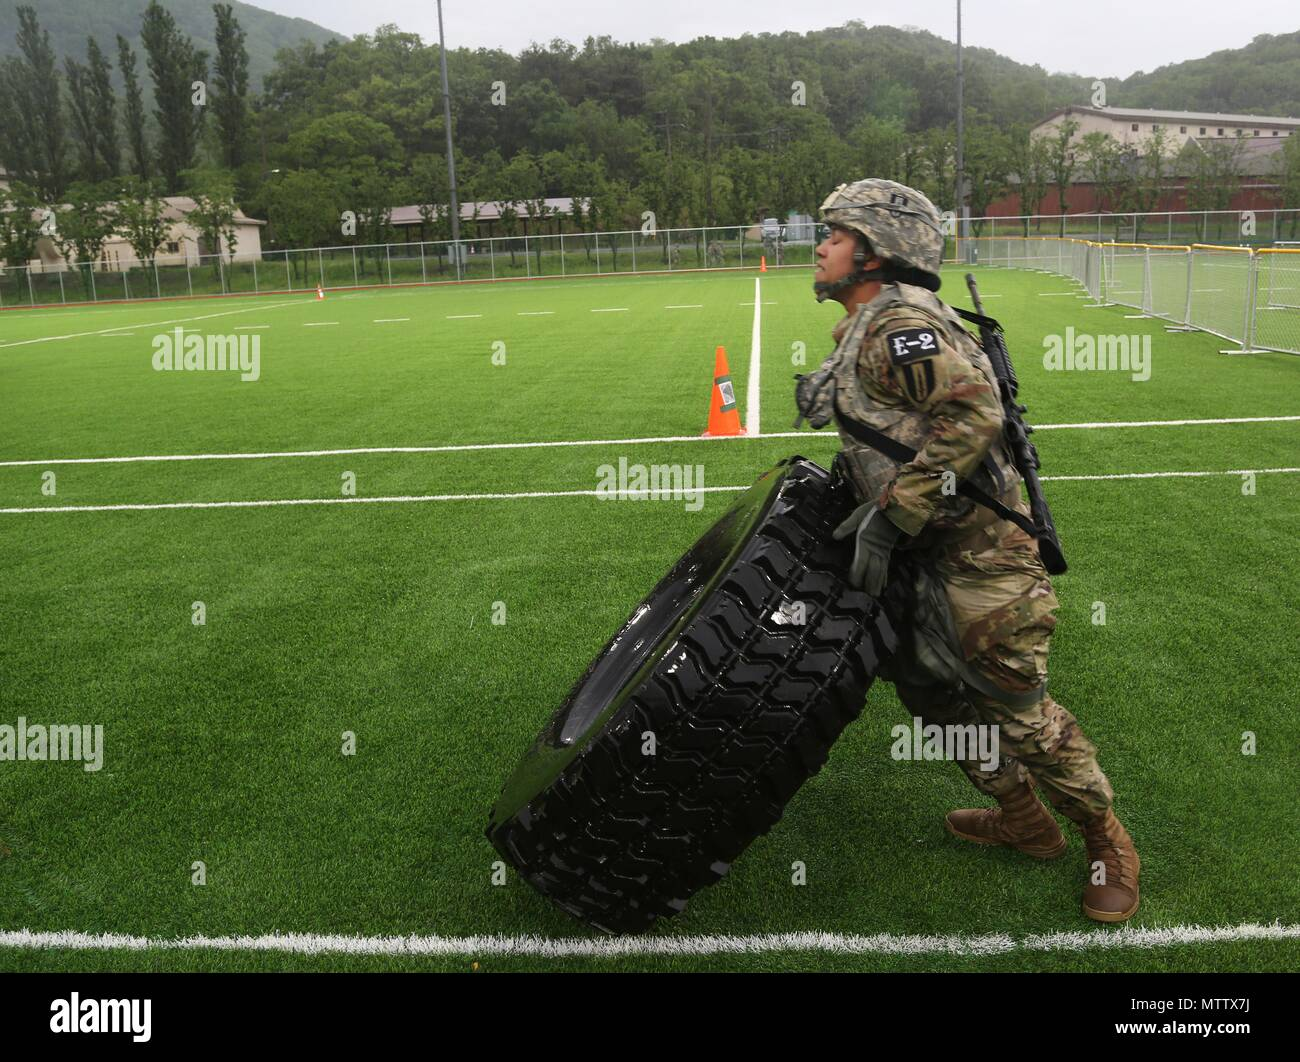 U.S. Army Pfc. Samera Taylor, a native of Lake City, FL, assigned to the 1st Signal Brigade, performs tire flips at the Physical Fitness Test during the Eighth Army 2018 Best Warrior Competition, held at Camp Casey, Republic of Korea, May 17, 2018, May 17, 2018. The Eighth Army Best warrior Competition is being held to recognize and select the most qualified junior enlisted and non-commissioned officer to represent Eighth Army at the U.S. Army Pacific Best Warrior Competition at Schofield Barracks, HI. The competition will also recognize the top performing officer, warrant officer and Korean A - Stock Image